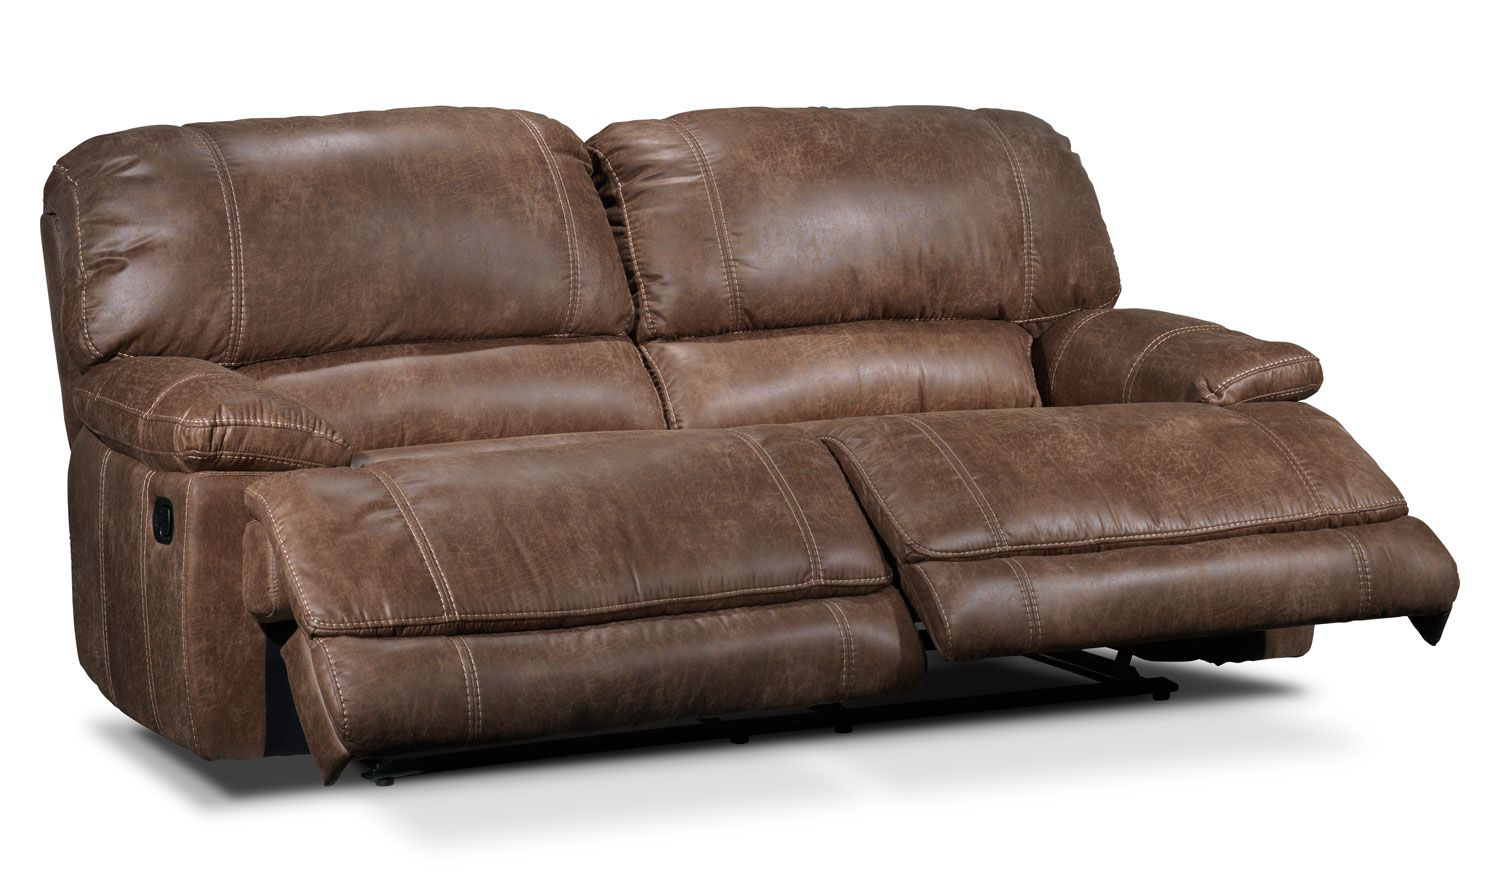 Saddle Up The Rugged Look Of The Durango Reclining Sofa Makes It